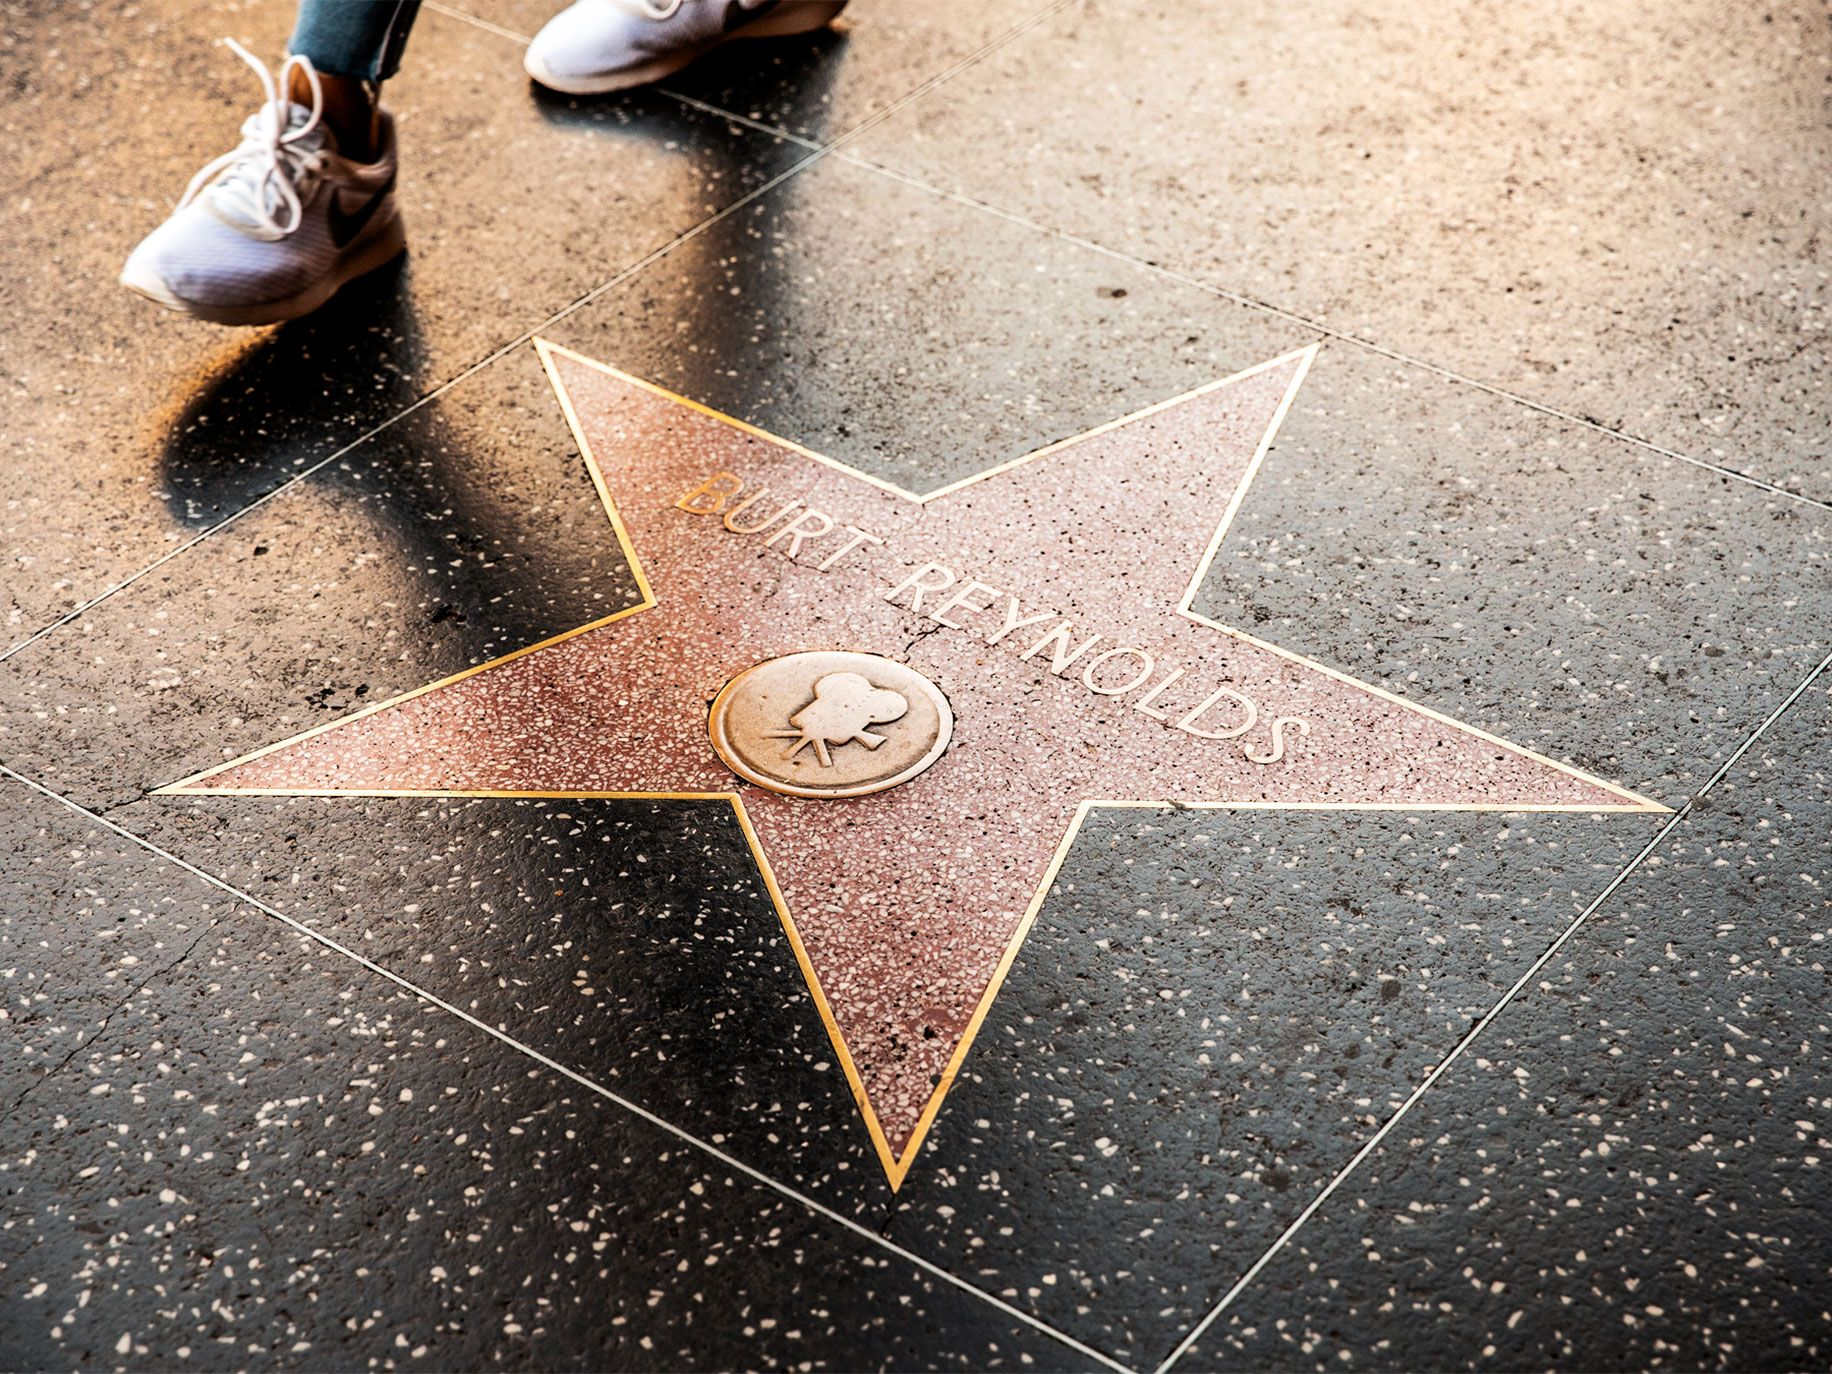 Burt Reynolds' star on the Hollywood Walk of Fame, near the starting point for the TMZ bus tour.